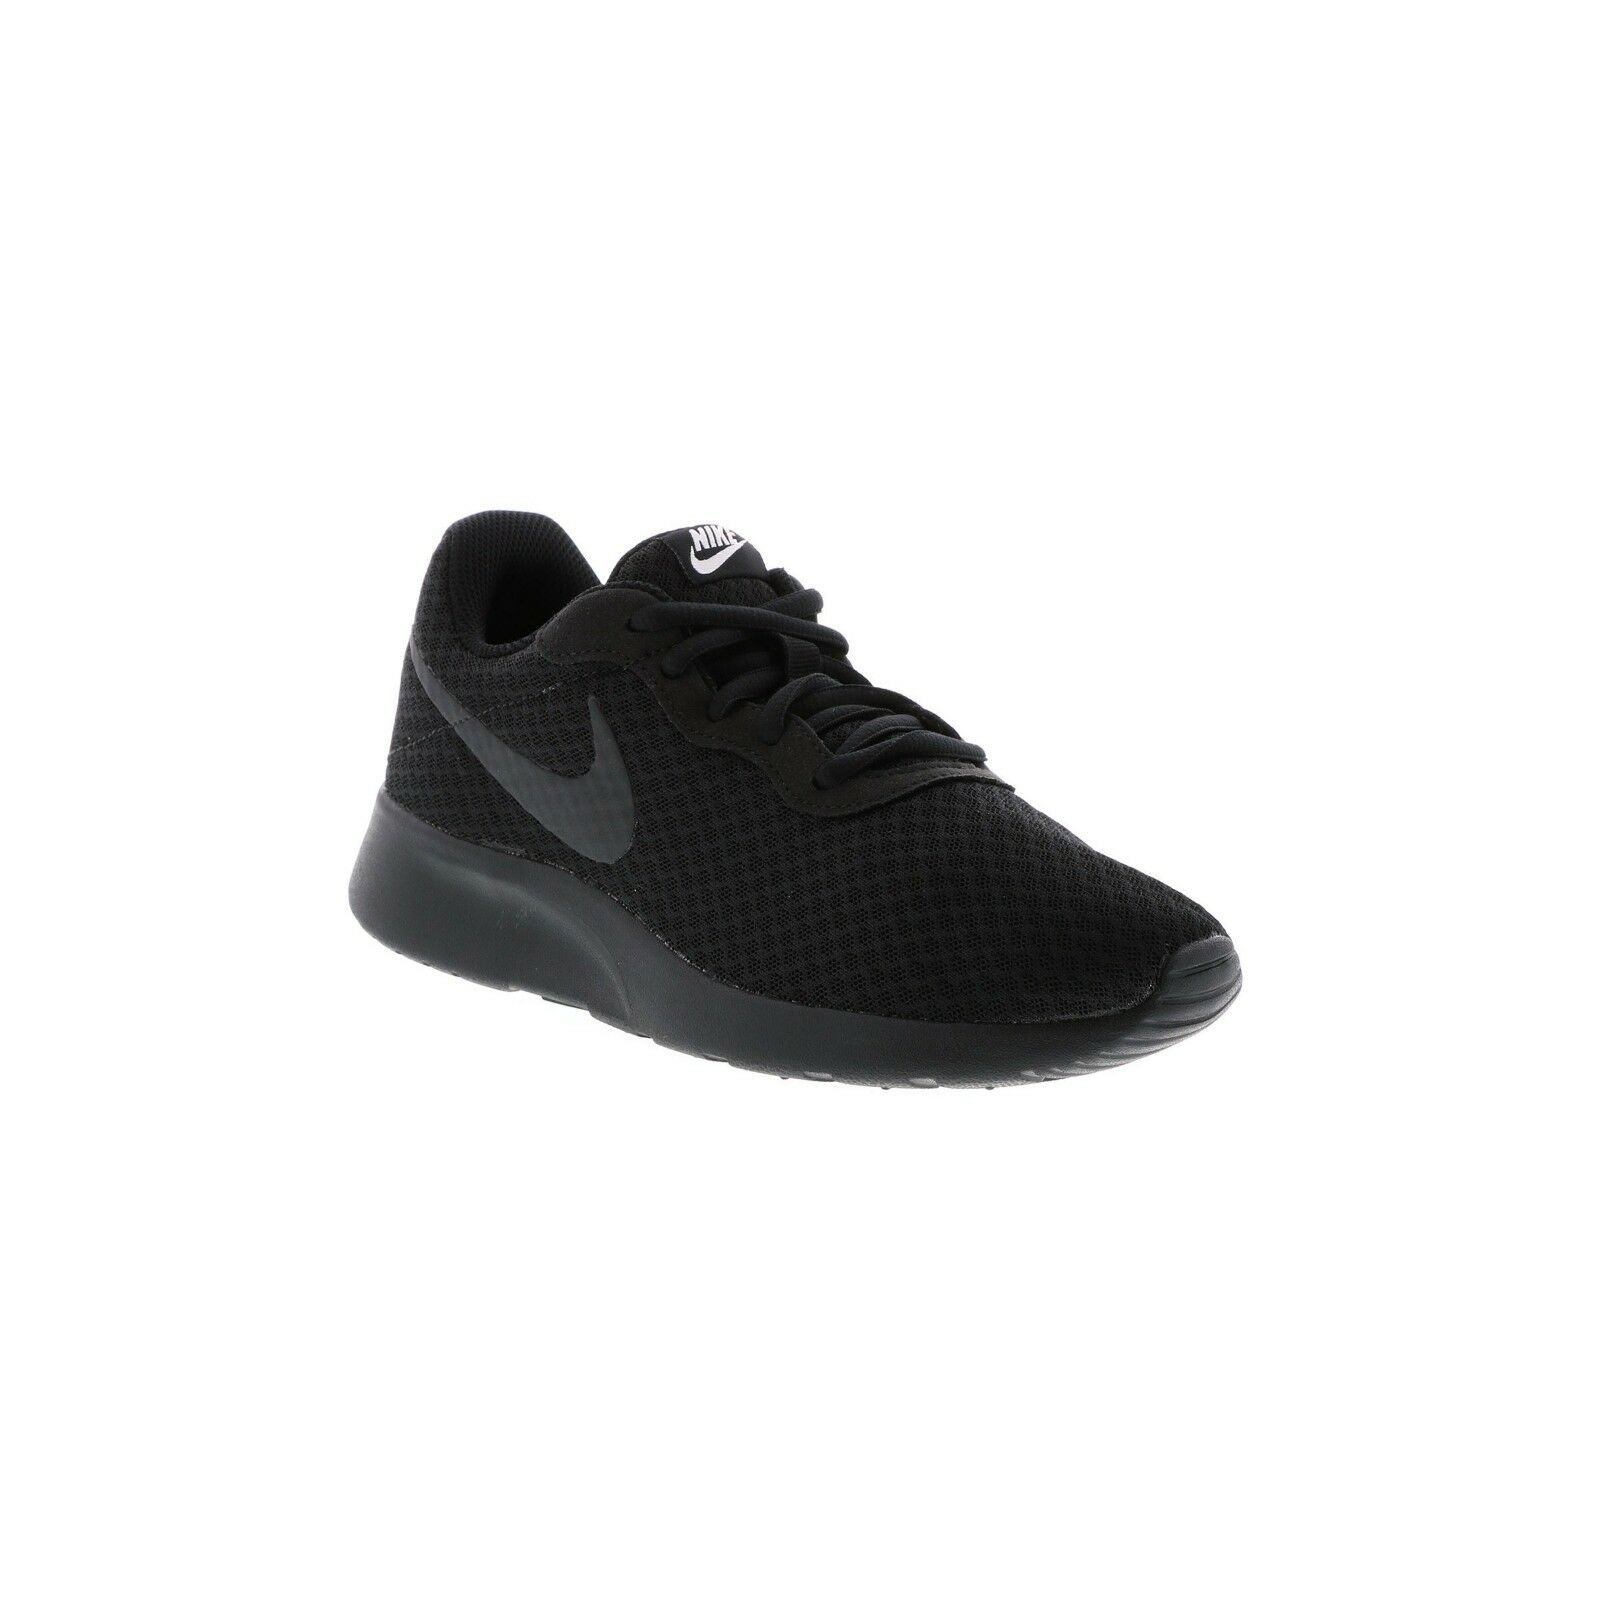 812654-001 Nike Tanjun Casual shoes Black Black Sizes 8-13 New In Box